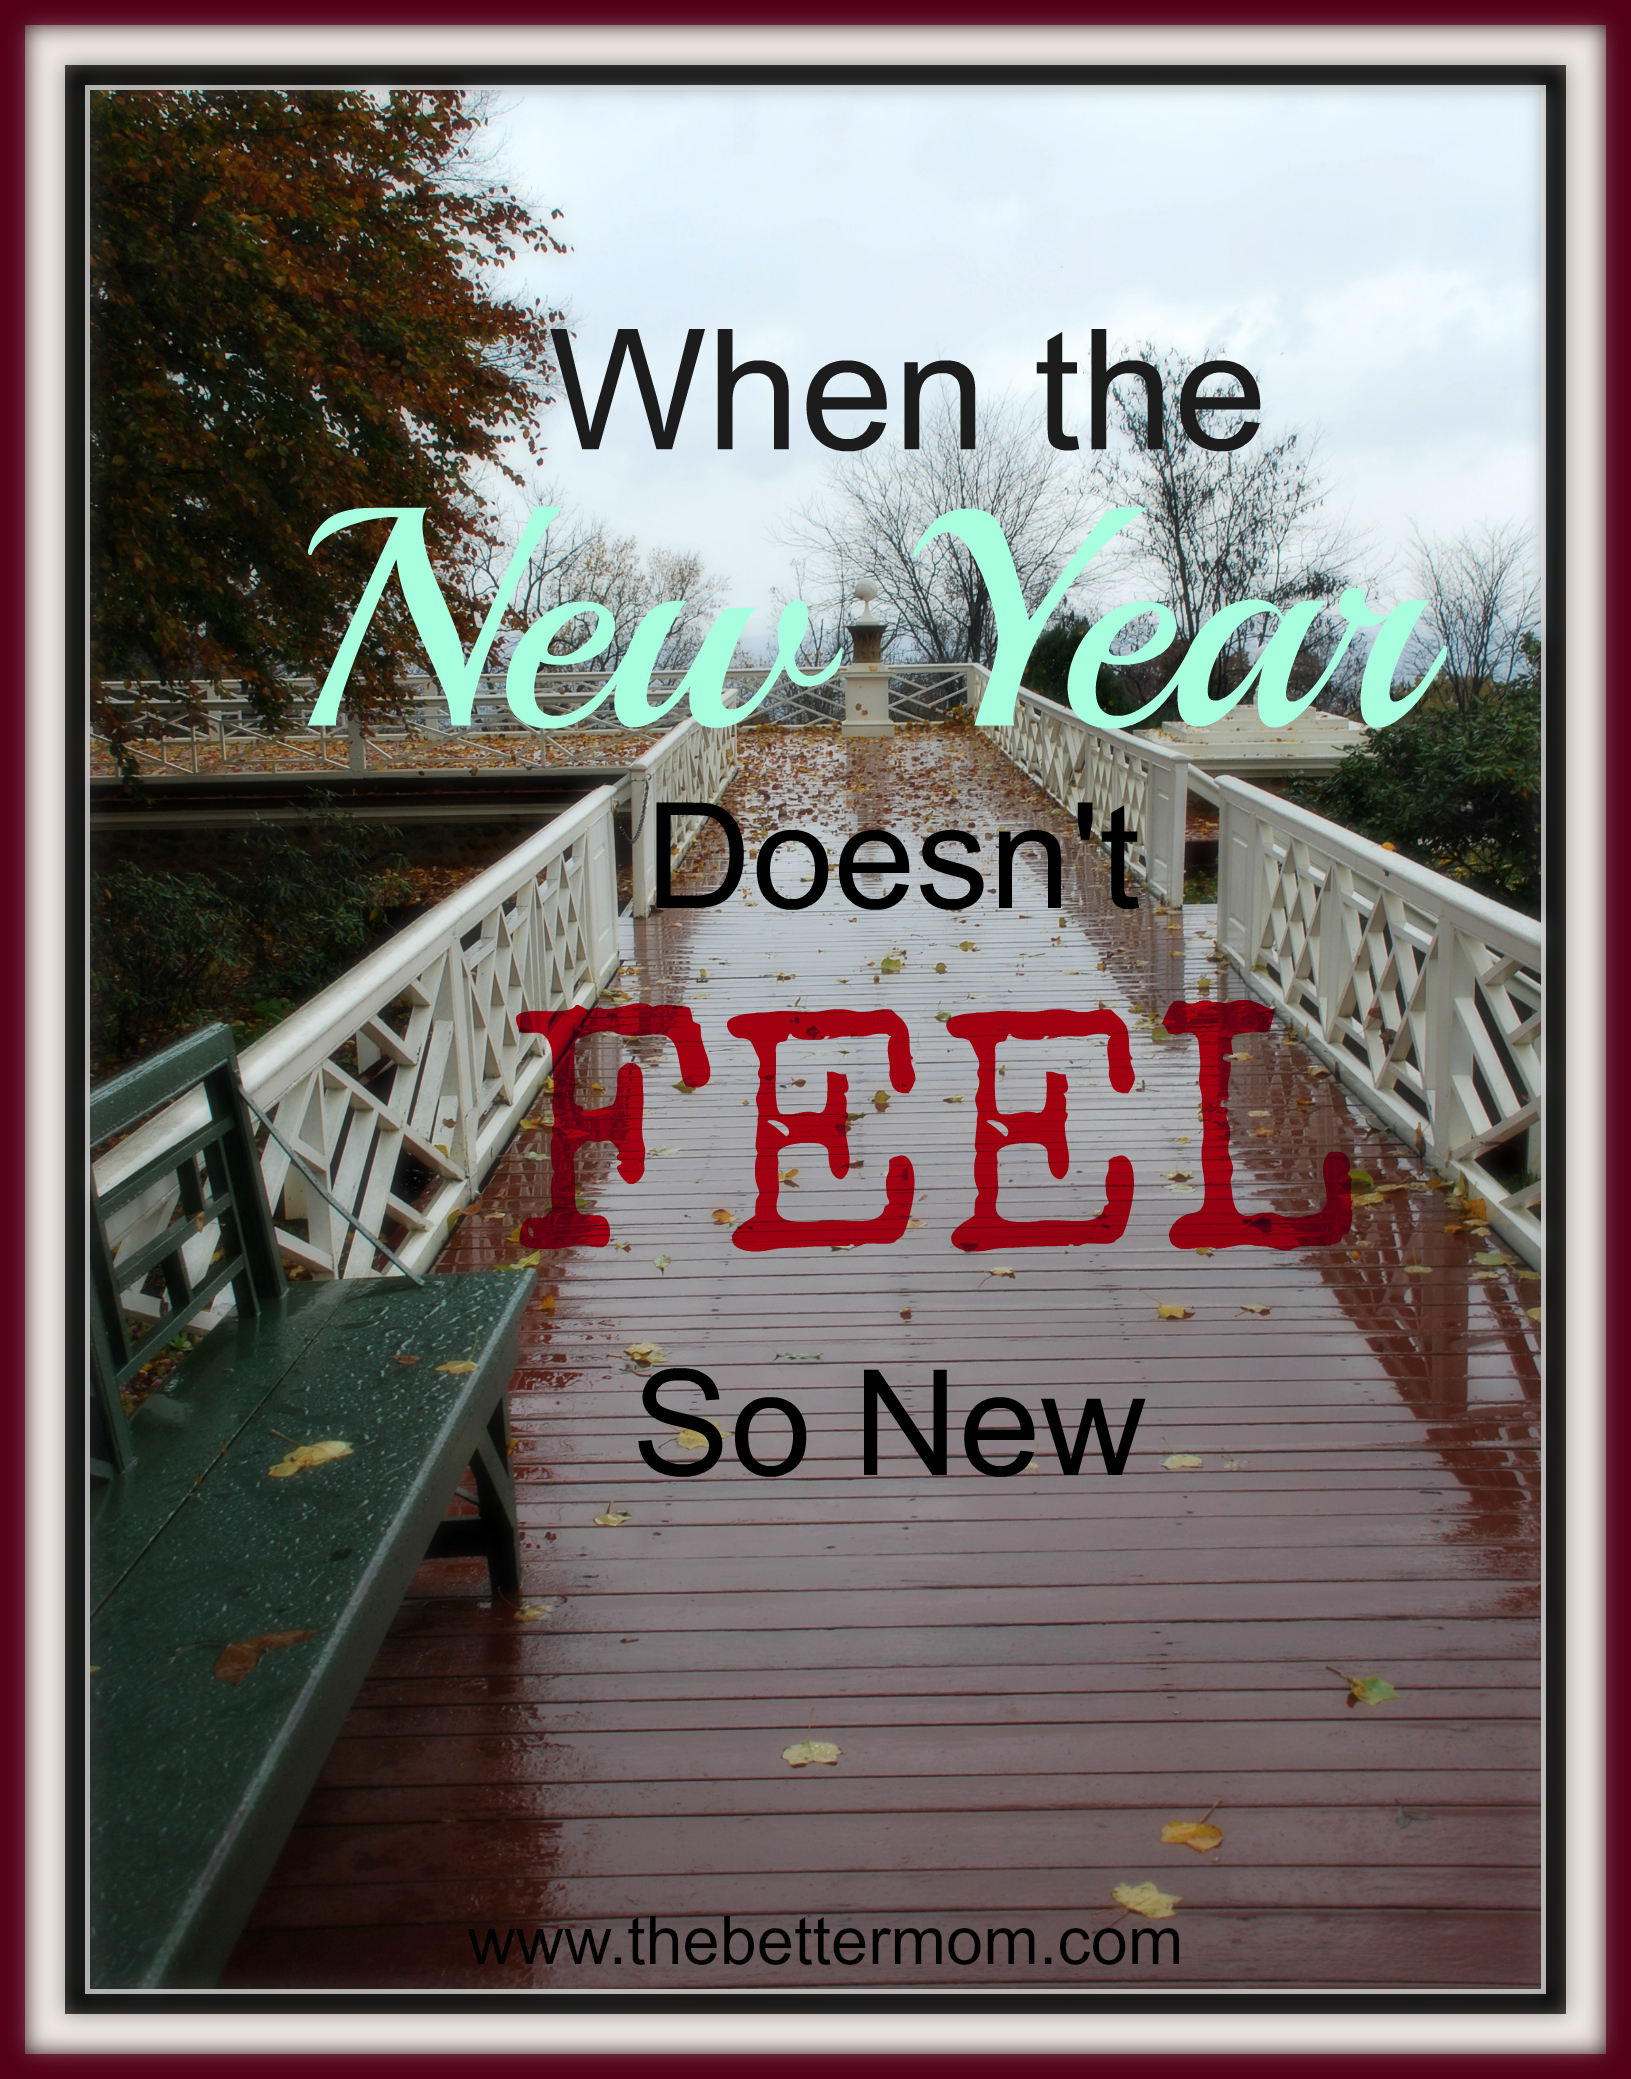 So It's A New Year. Now What?